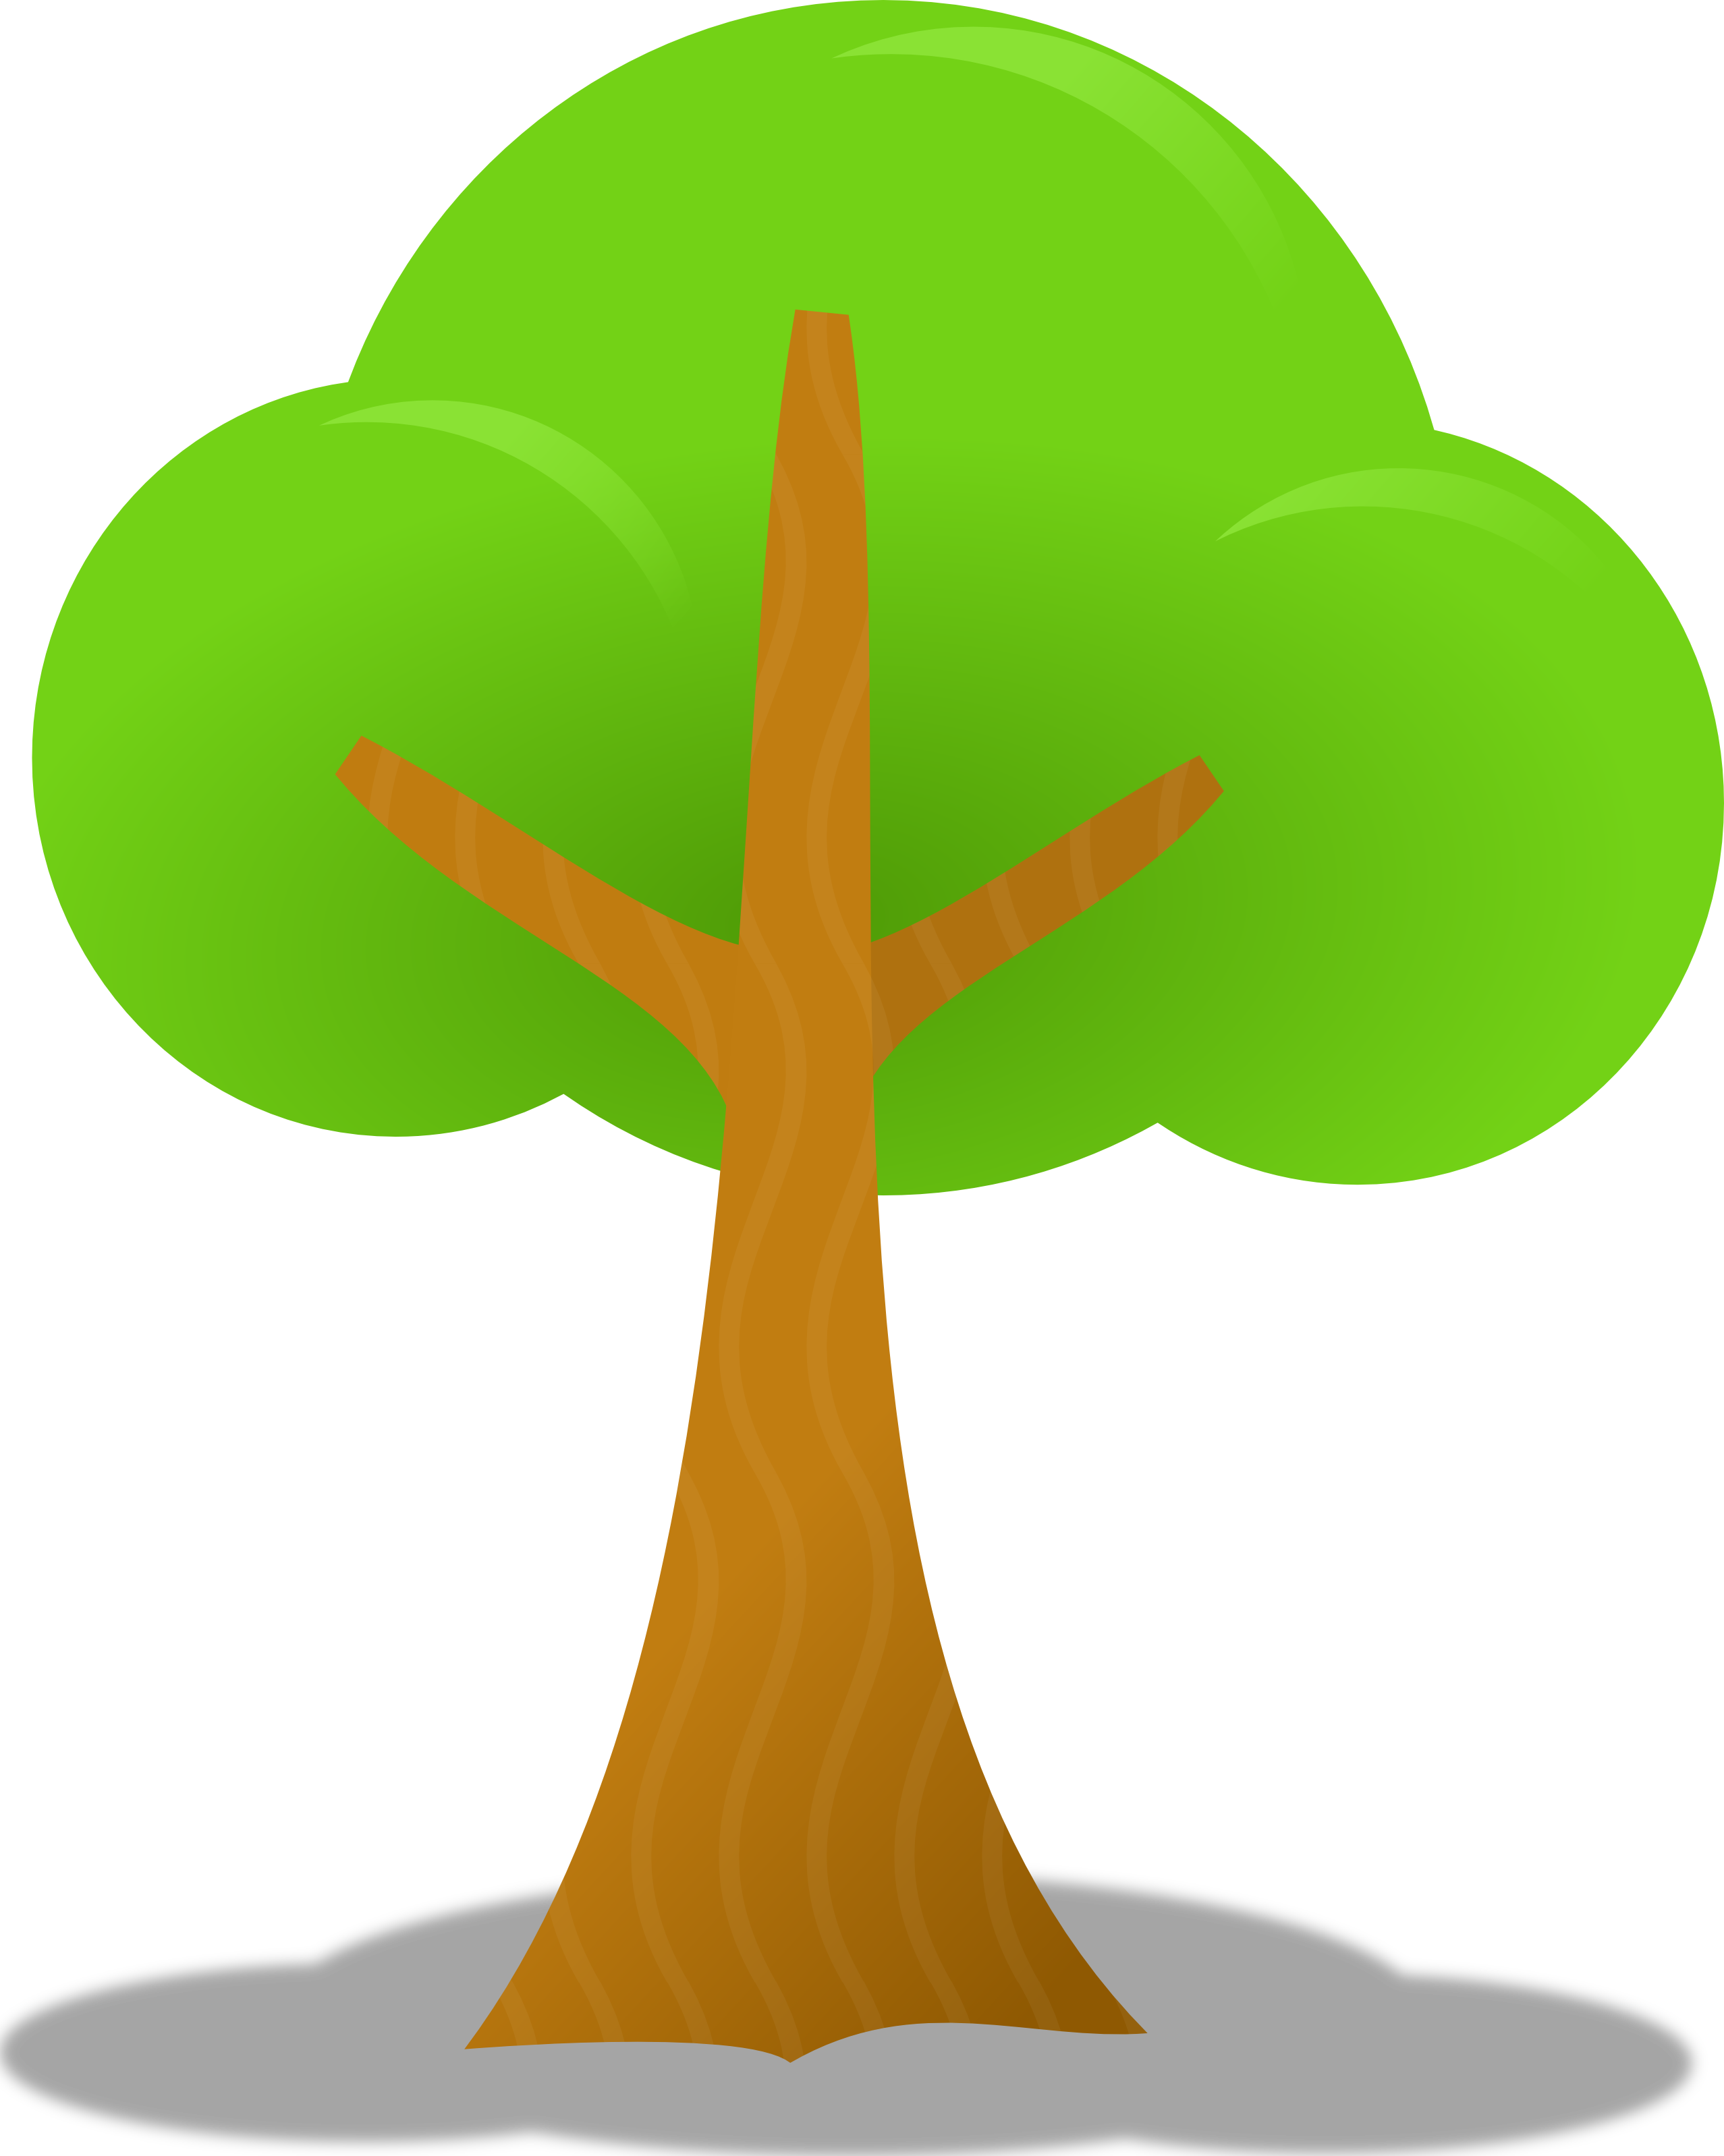 Simple Tree Clipart - Clipart Kid